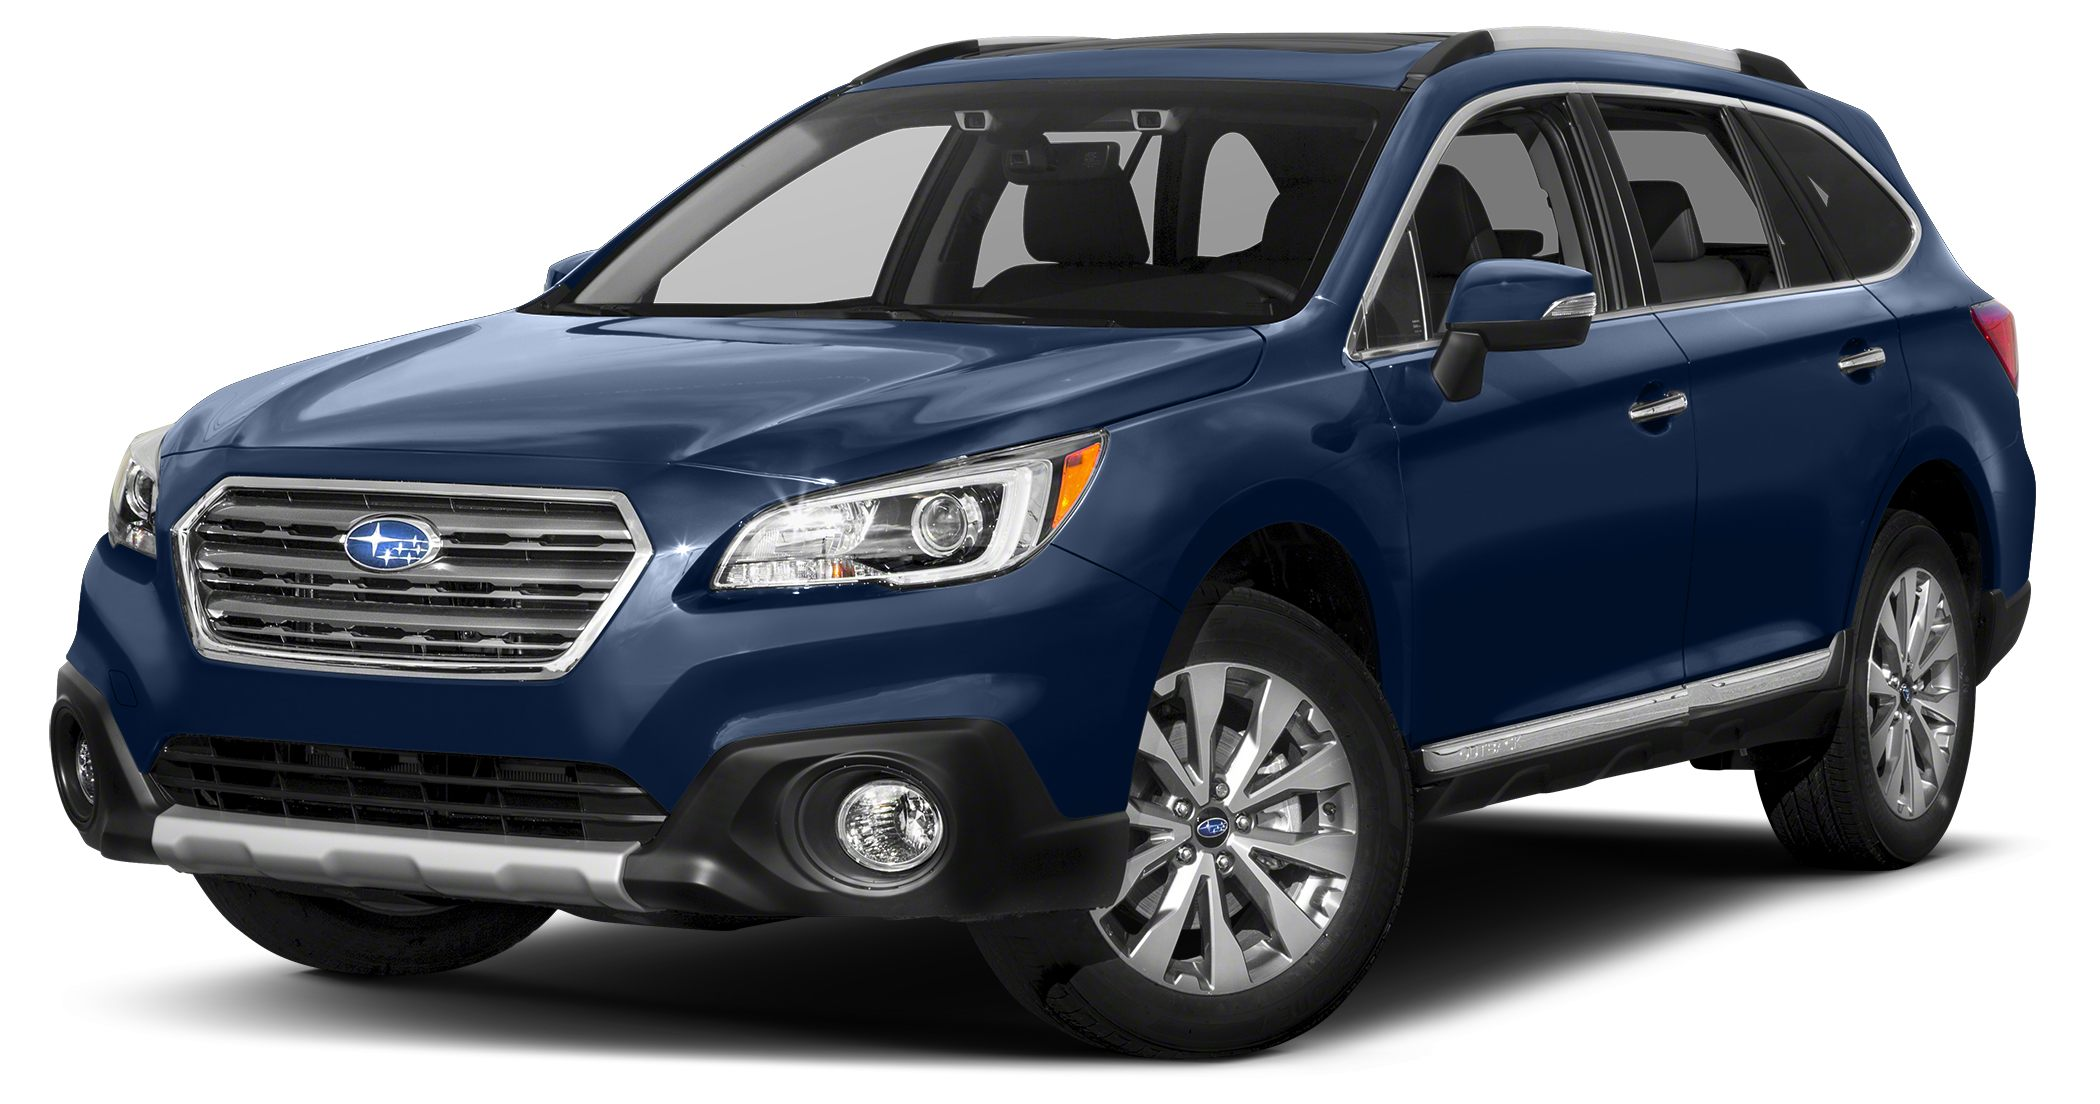 2017 Subaru Outback 36R Touring Thank you for visiting another one of Conley Subarus exclusive l